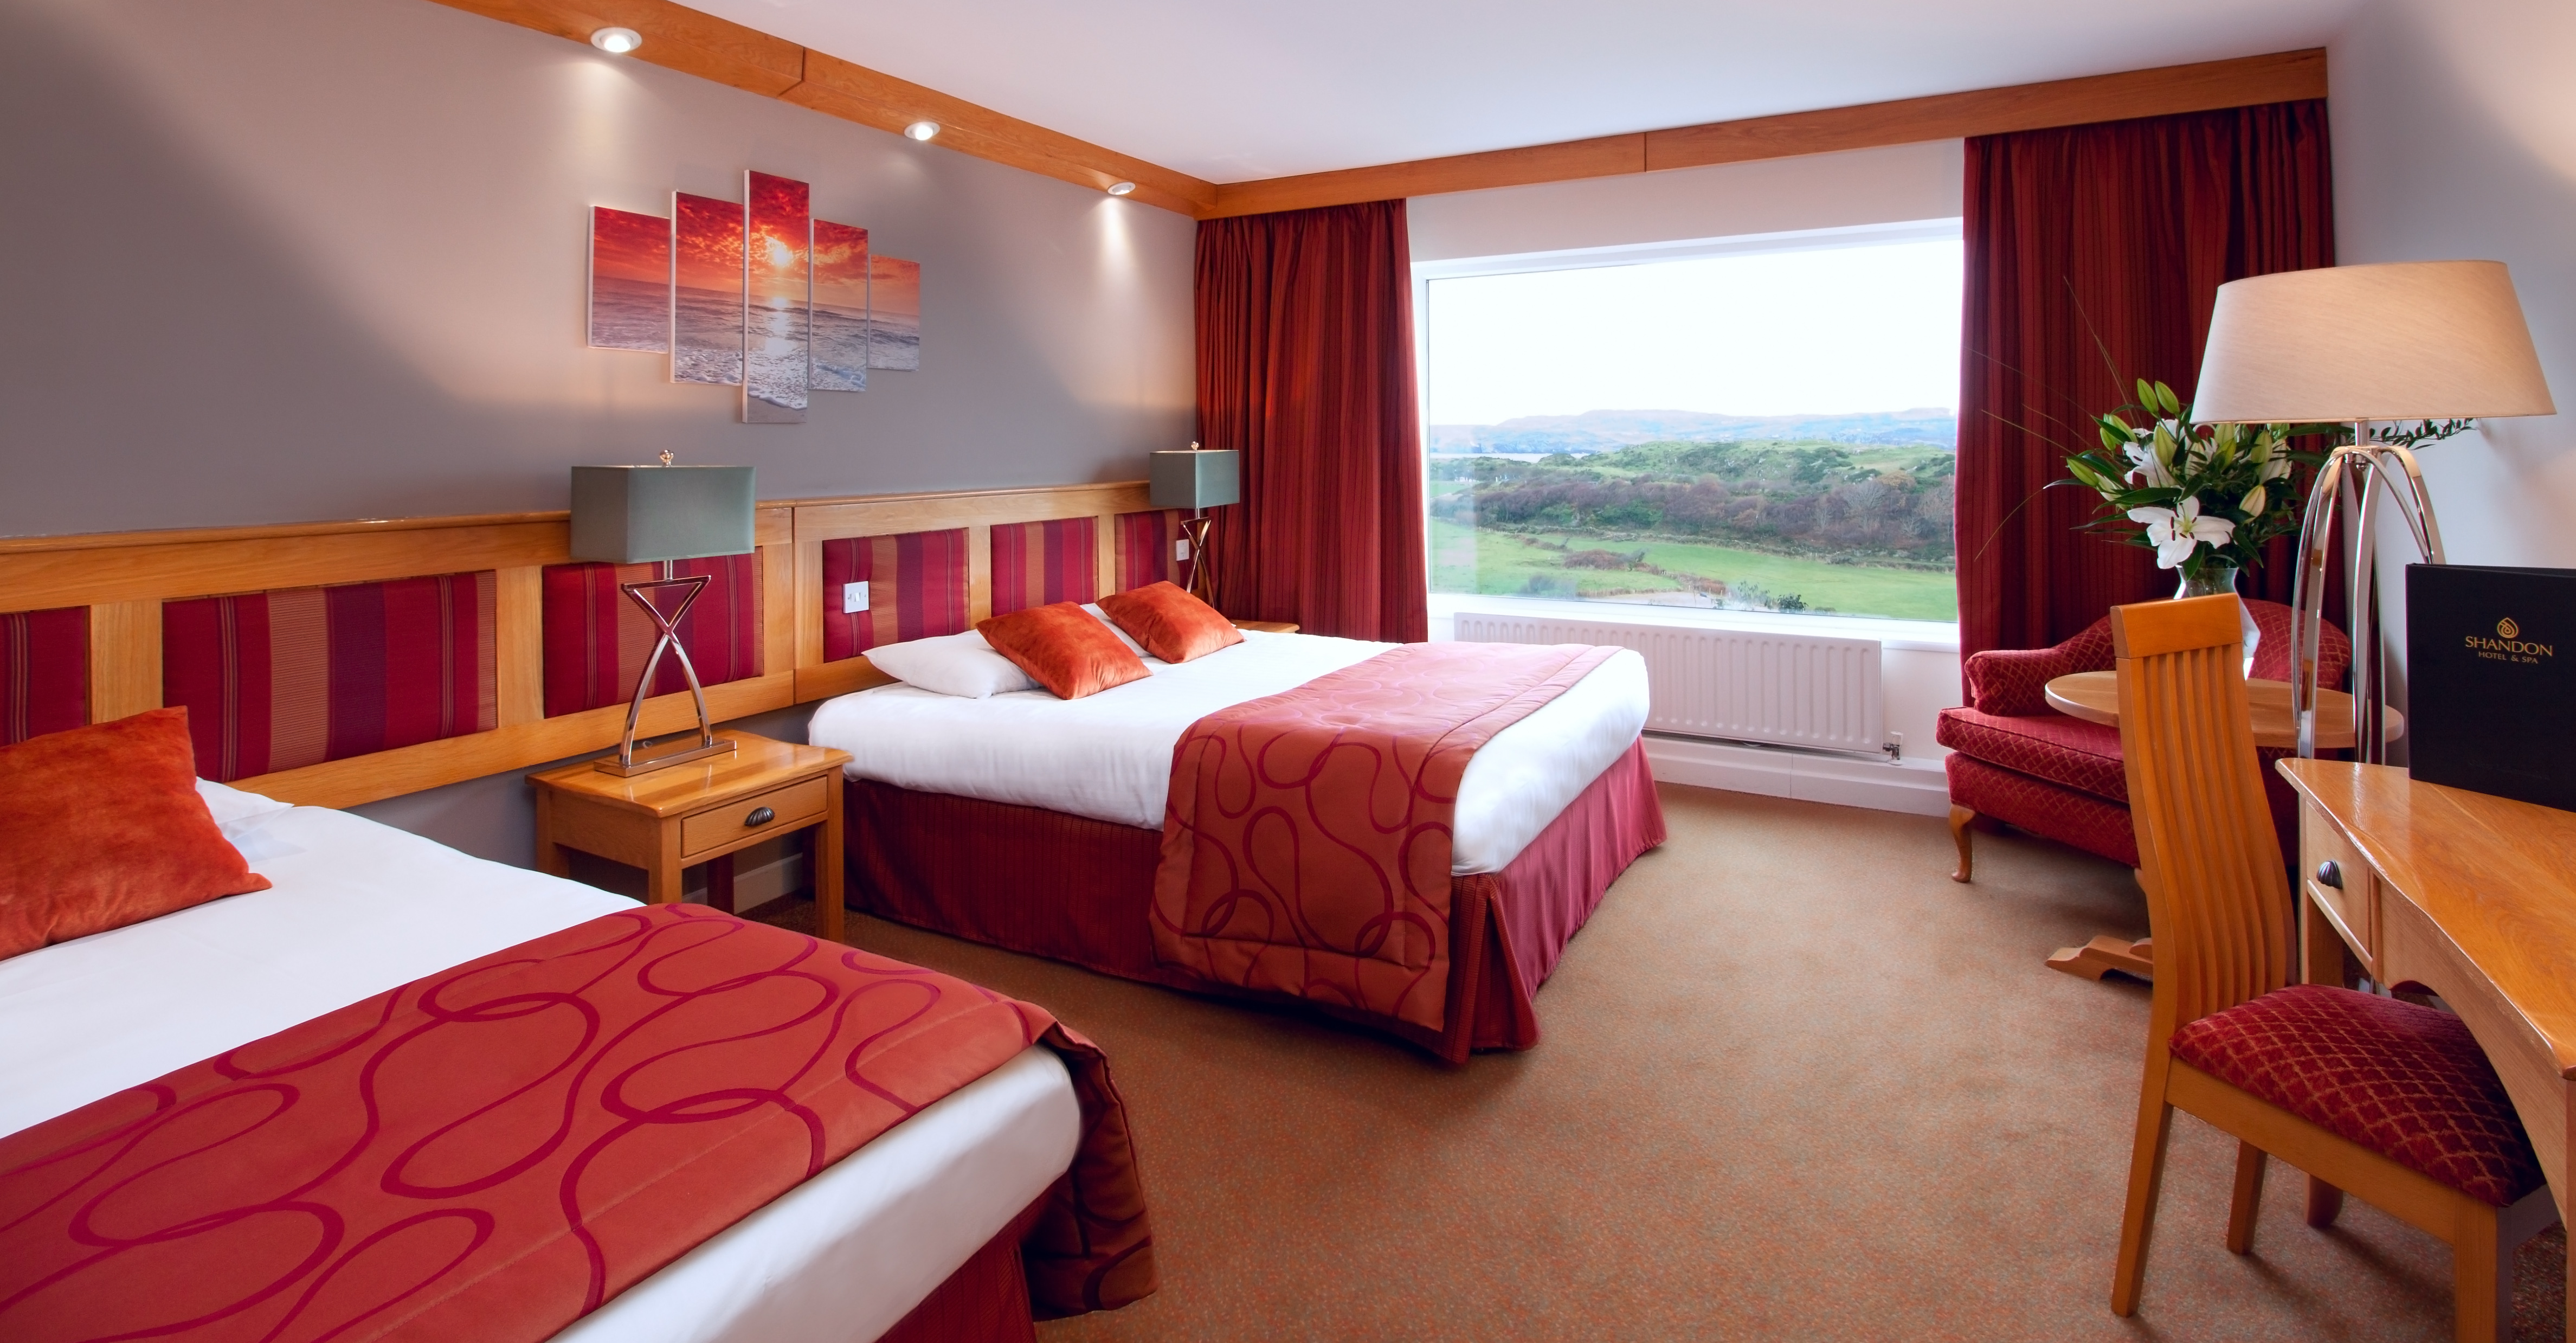 New Deluxe Rooms at the Shandon!